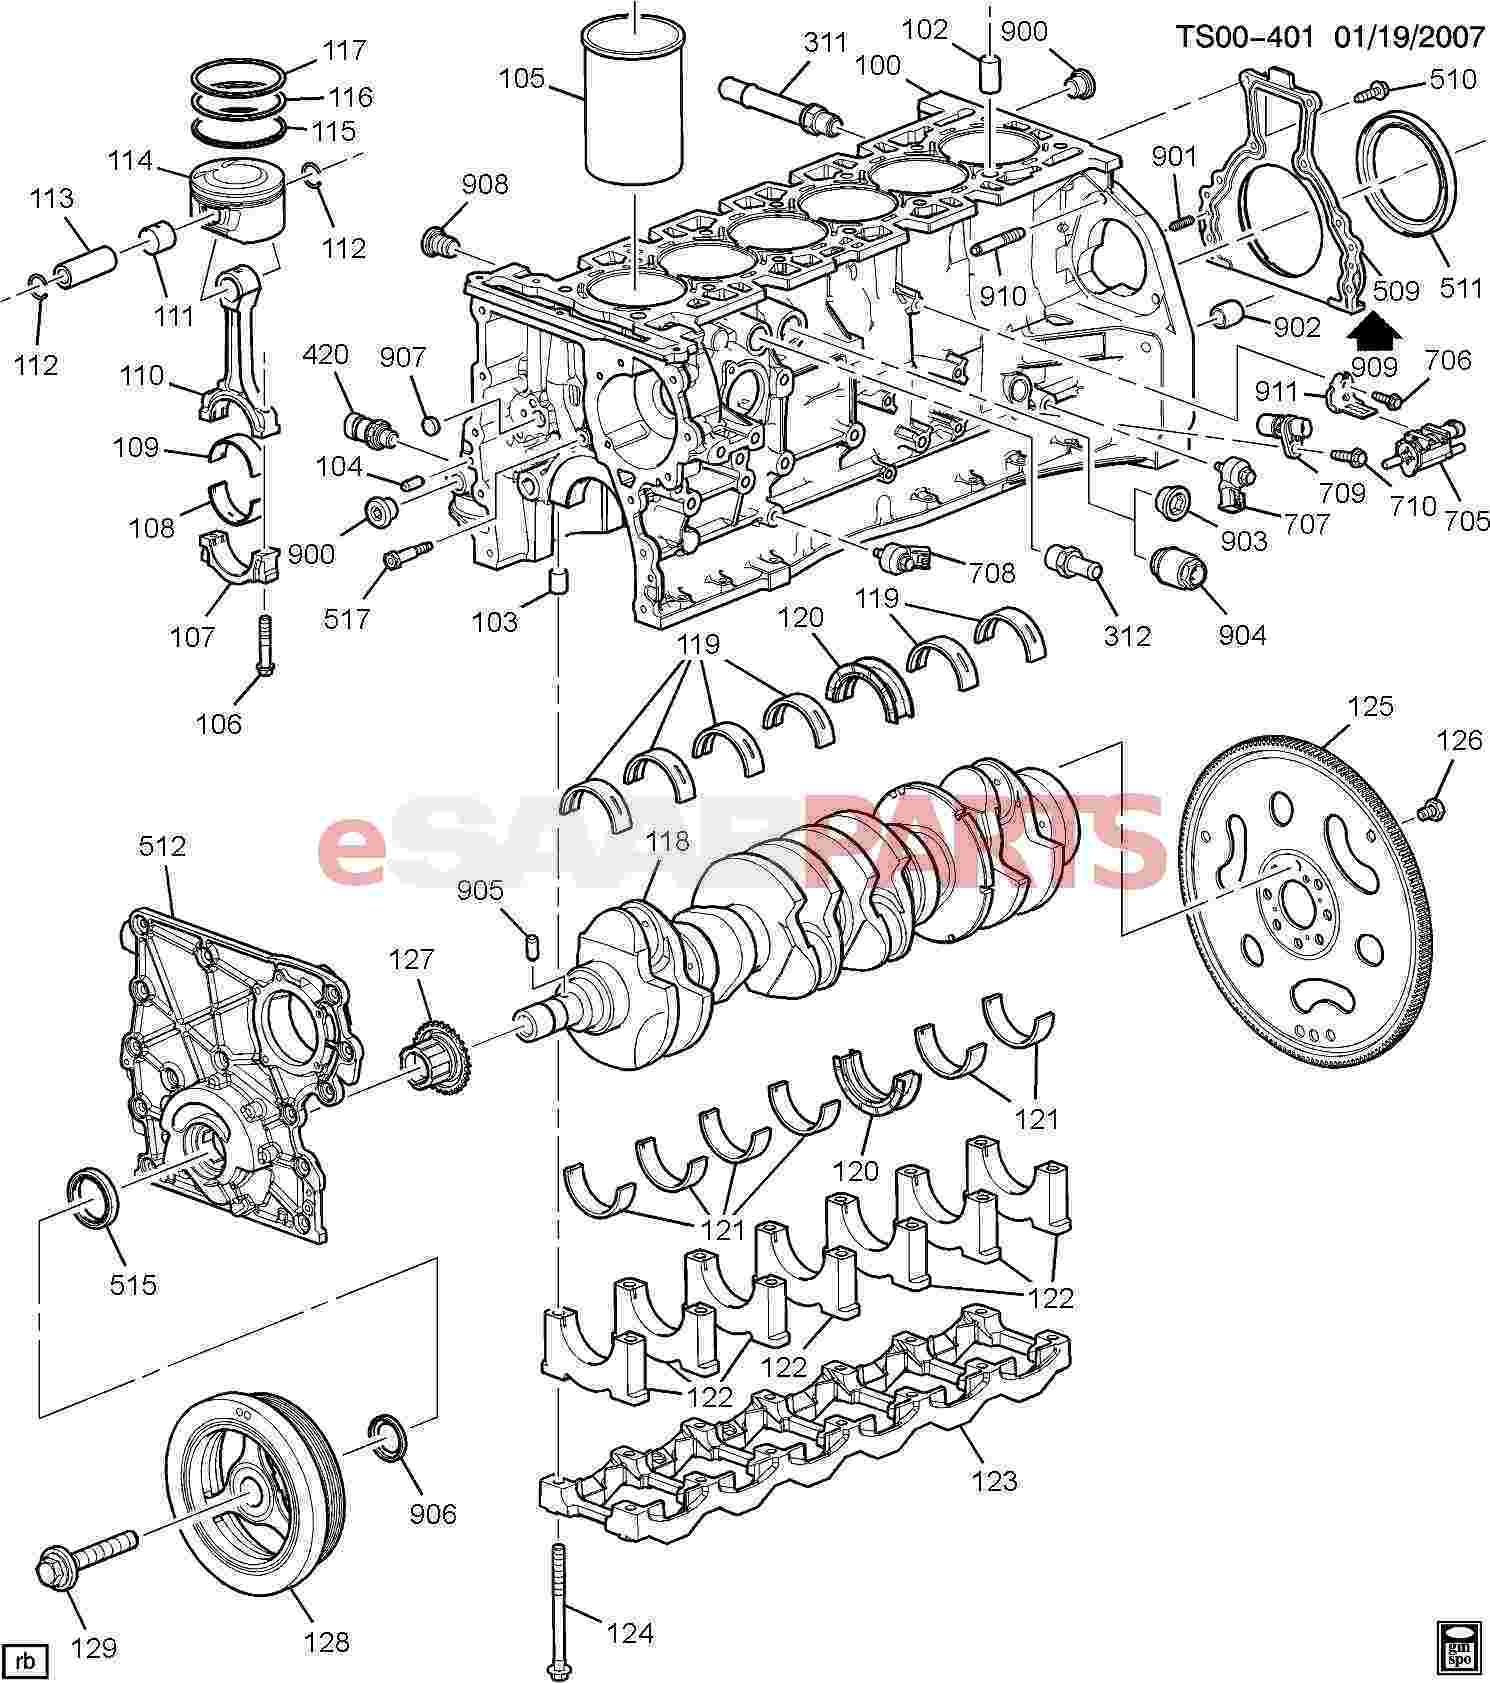 esaabparts com saab 9 7x u003e engine parts u003e engine internal 4 2s rh esaabparts com 70 Chevy 6 Cyl L6 Chevrolet 4.2 L6 Engine Diagram